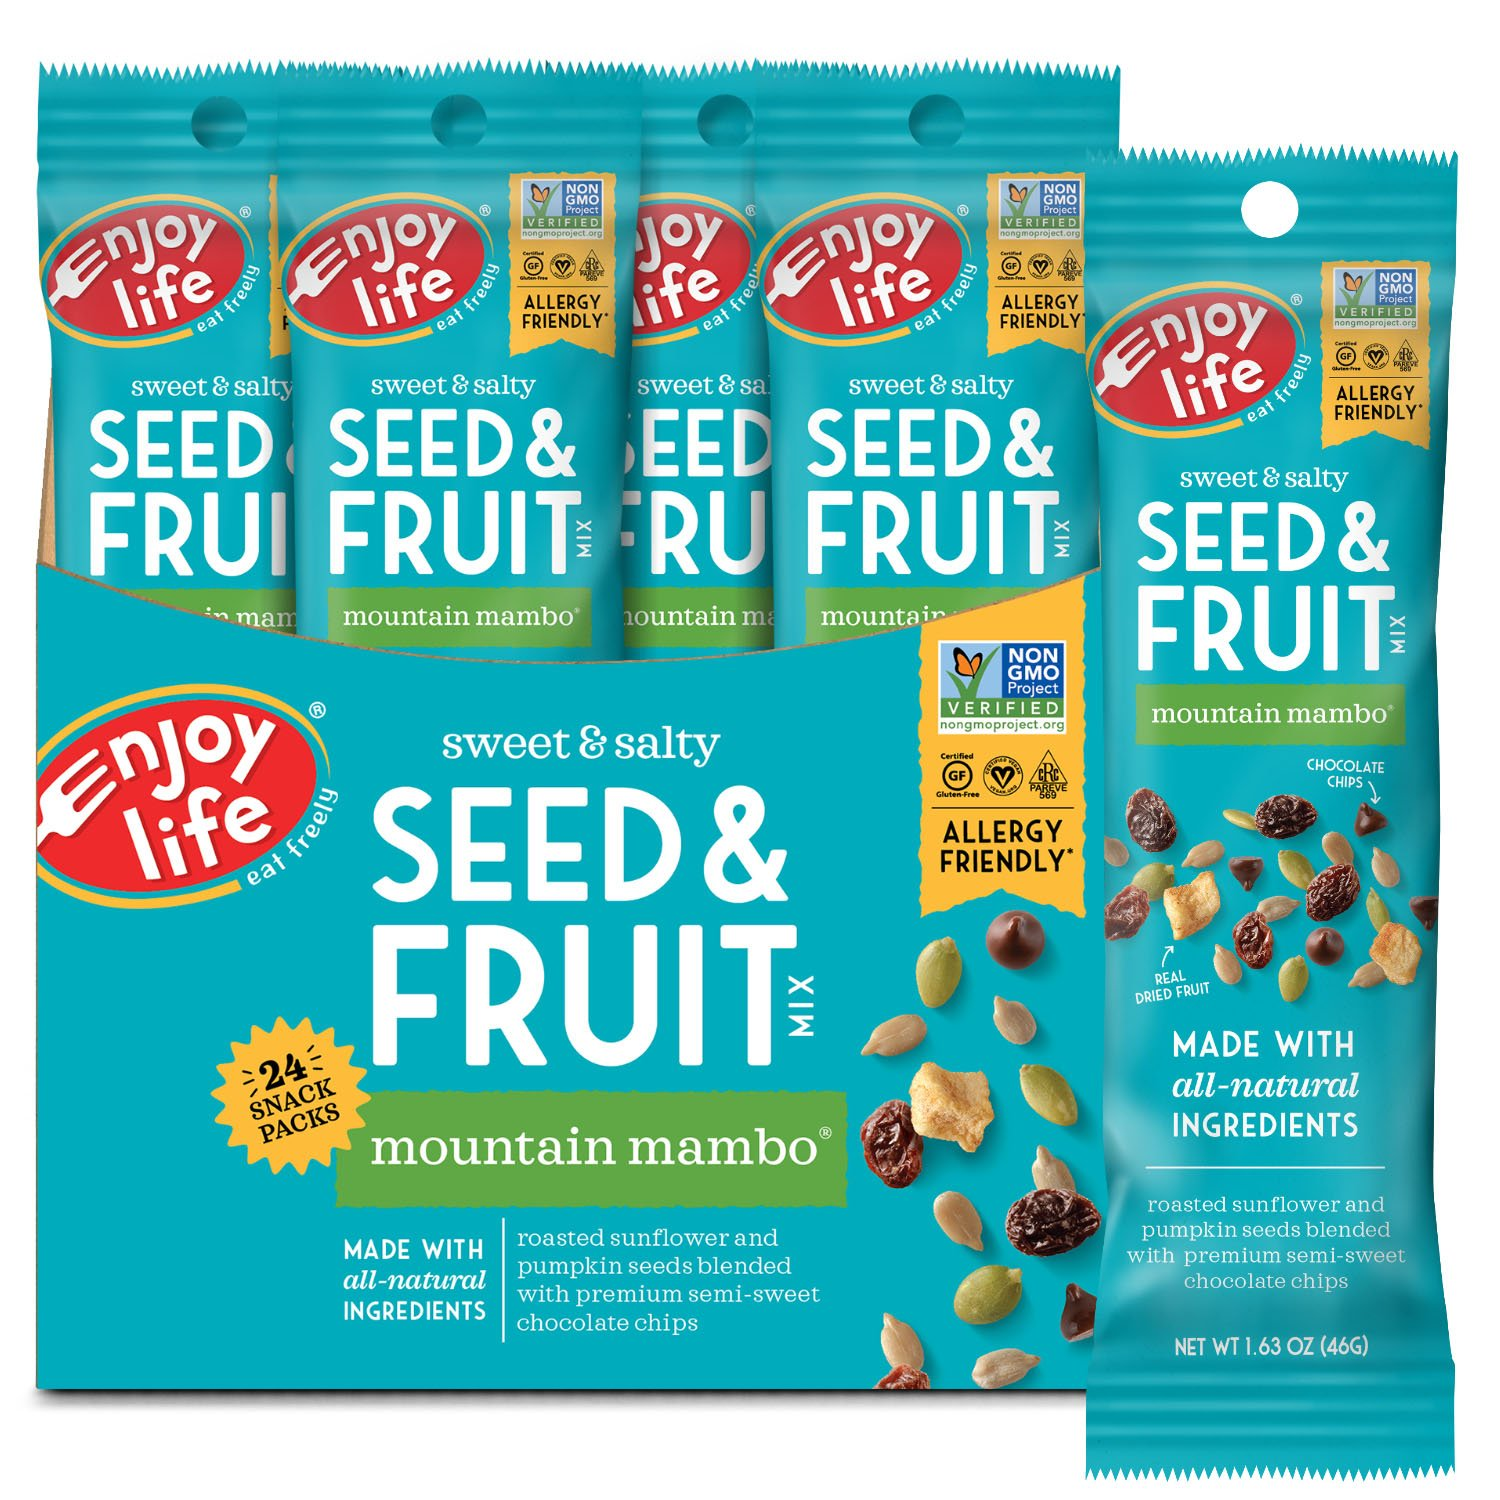 Enjoy Life Seed & Fruit Mix, Soy-free, Nut-free, Gluten-free, Dairy-free, Non-GMO, Vegan, Mountain Mambo, 1.63 Ounce Bags (Pack of 24)